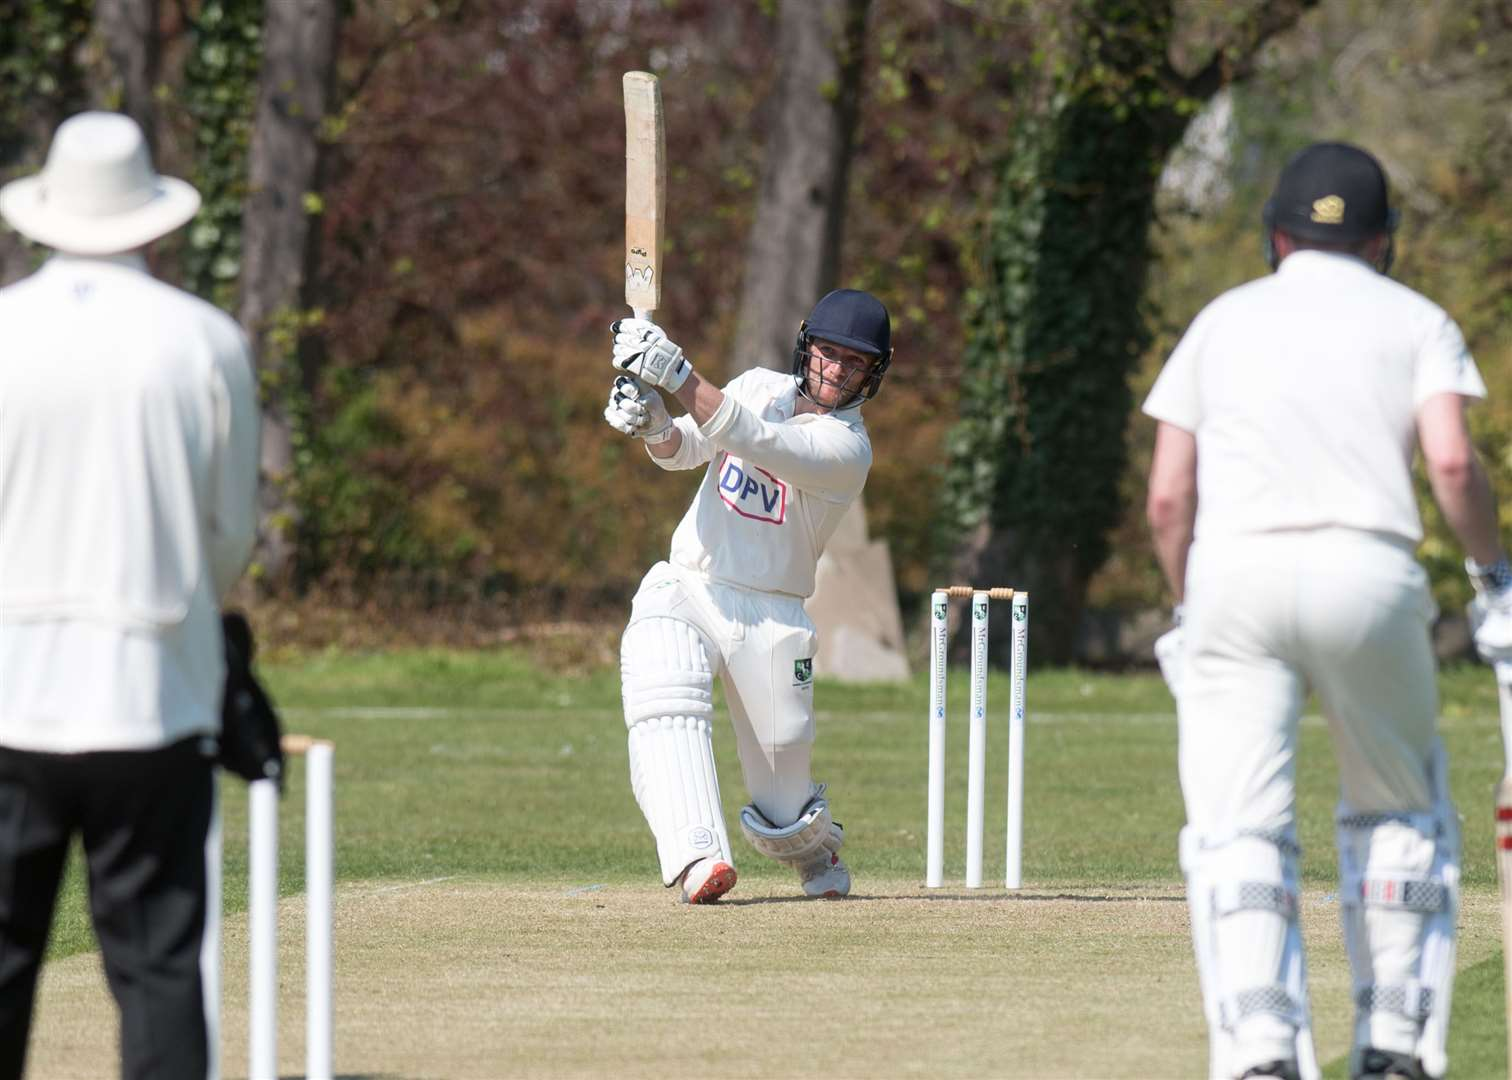 CRICKET: Burwell & Exning v Vauxhall Mallards Sam Rippingtonbatting for B&E Picture by Mark Westley. (8955531)